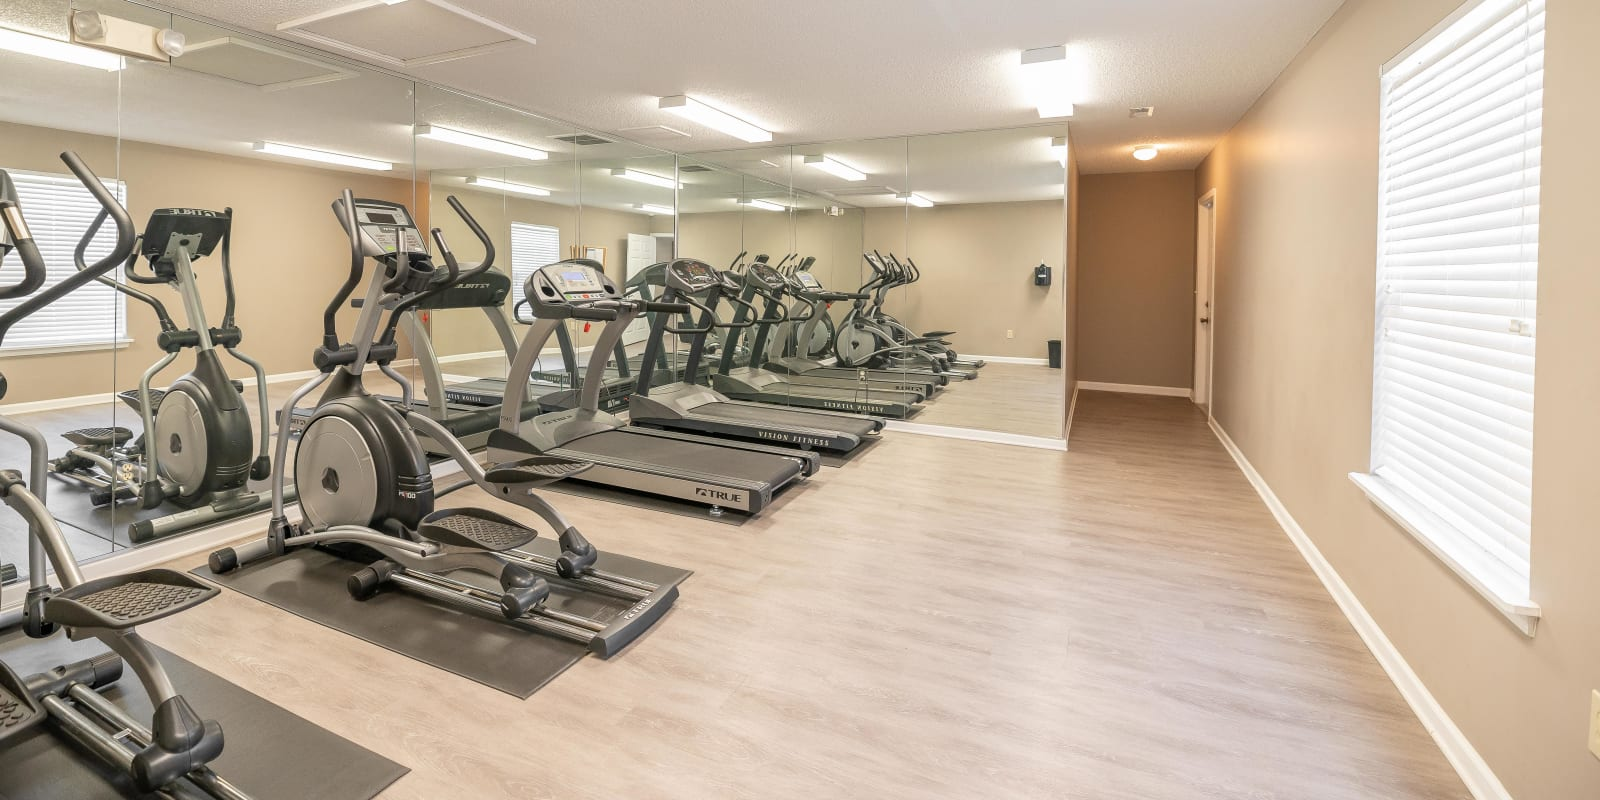 Fitness center with treadmills at The Village at Brierfield Apartment Homes in Charlotte, North Carolina